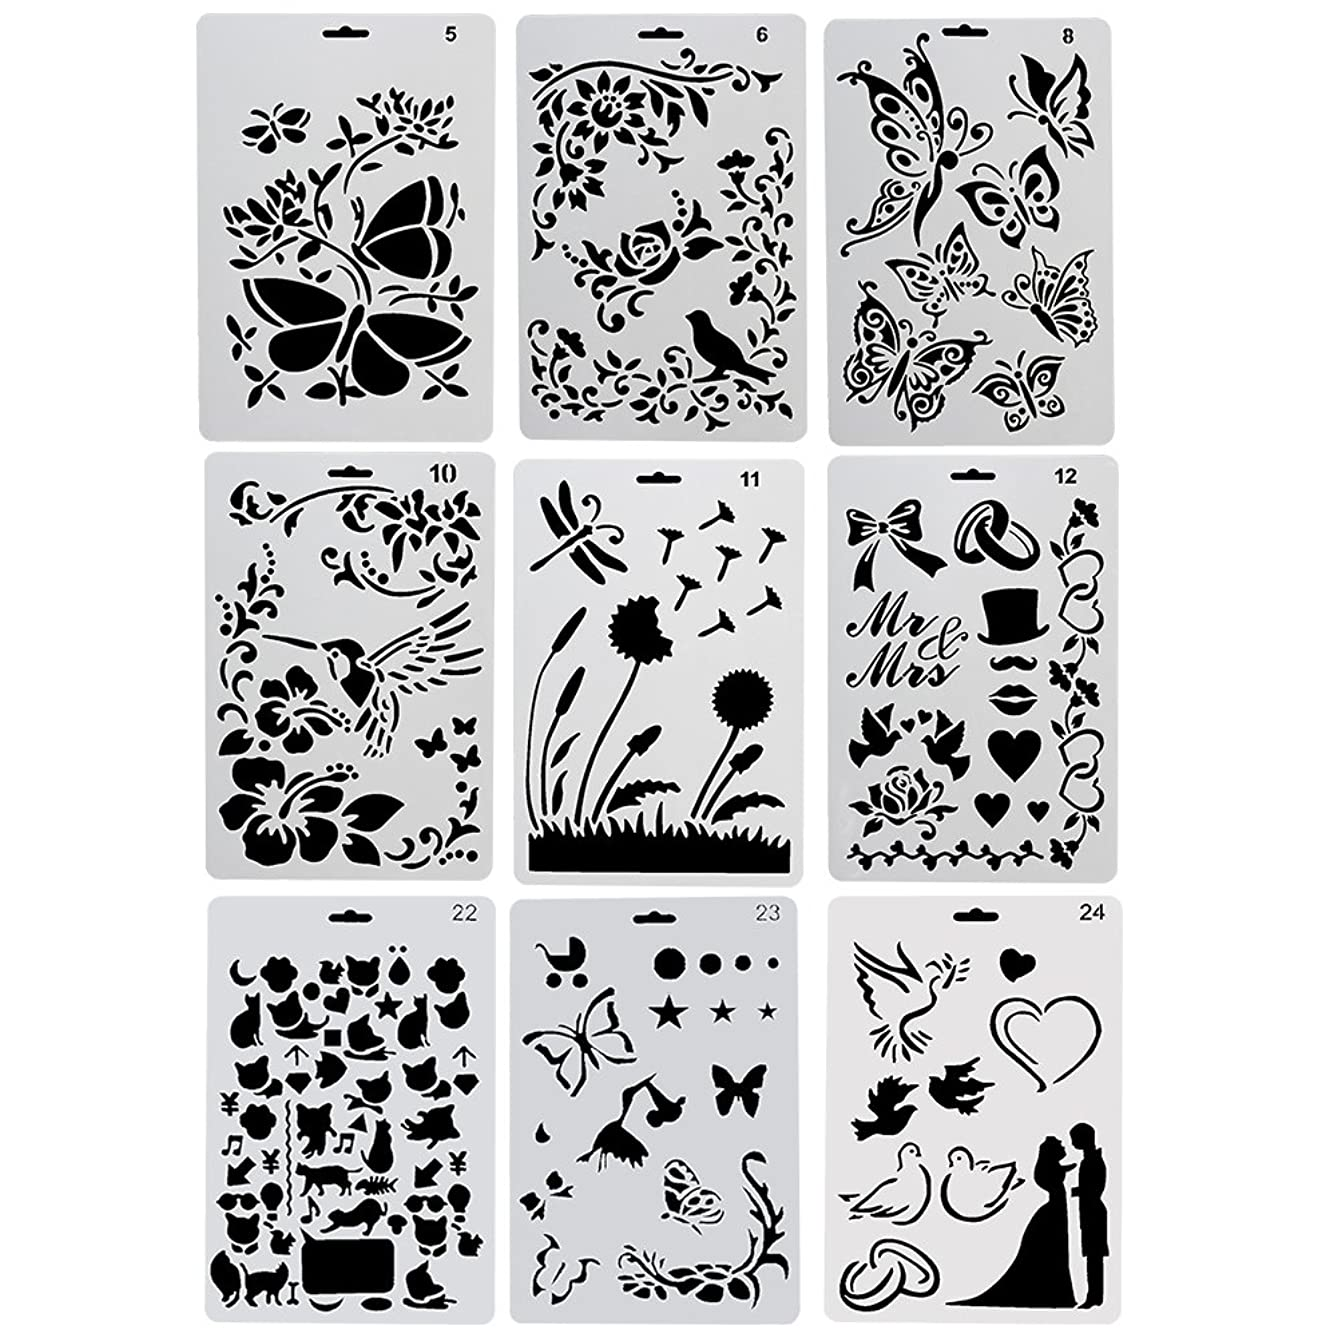 URlighting Drawing Painting Stencils Template(9 Pcs) - Various Styles Patterns with Butterfly, Flowers, Birds, Figures, Animal Shape, Heart Shape for Children Creation,Scrapbooking, DIY Craft Projects